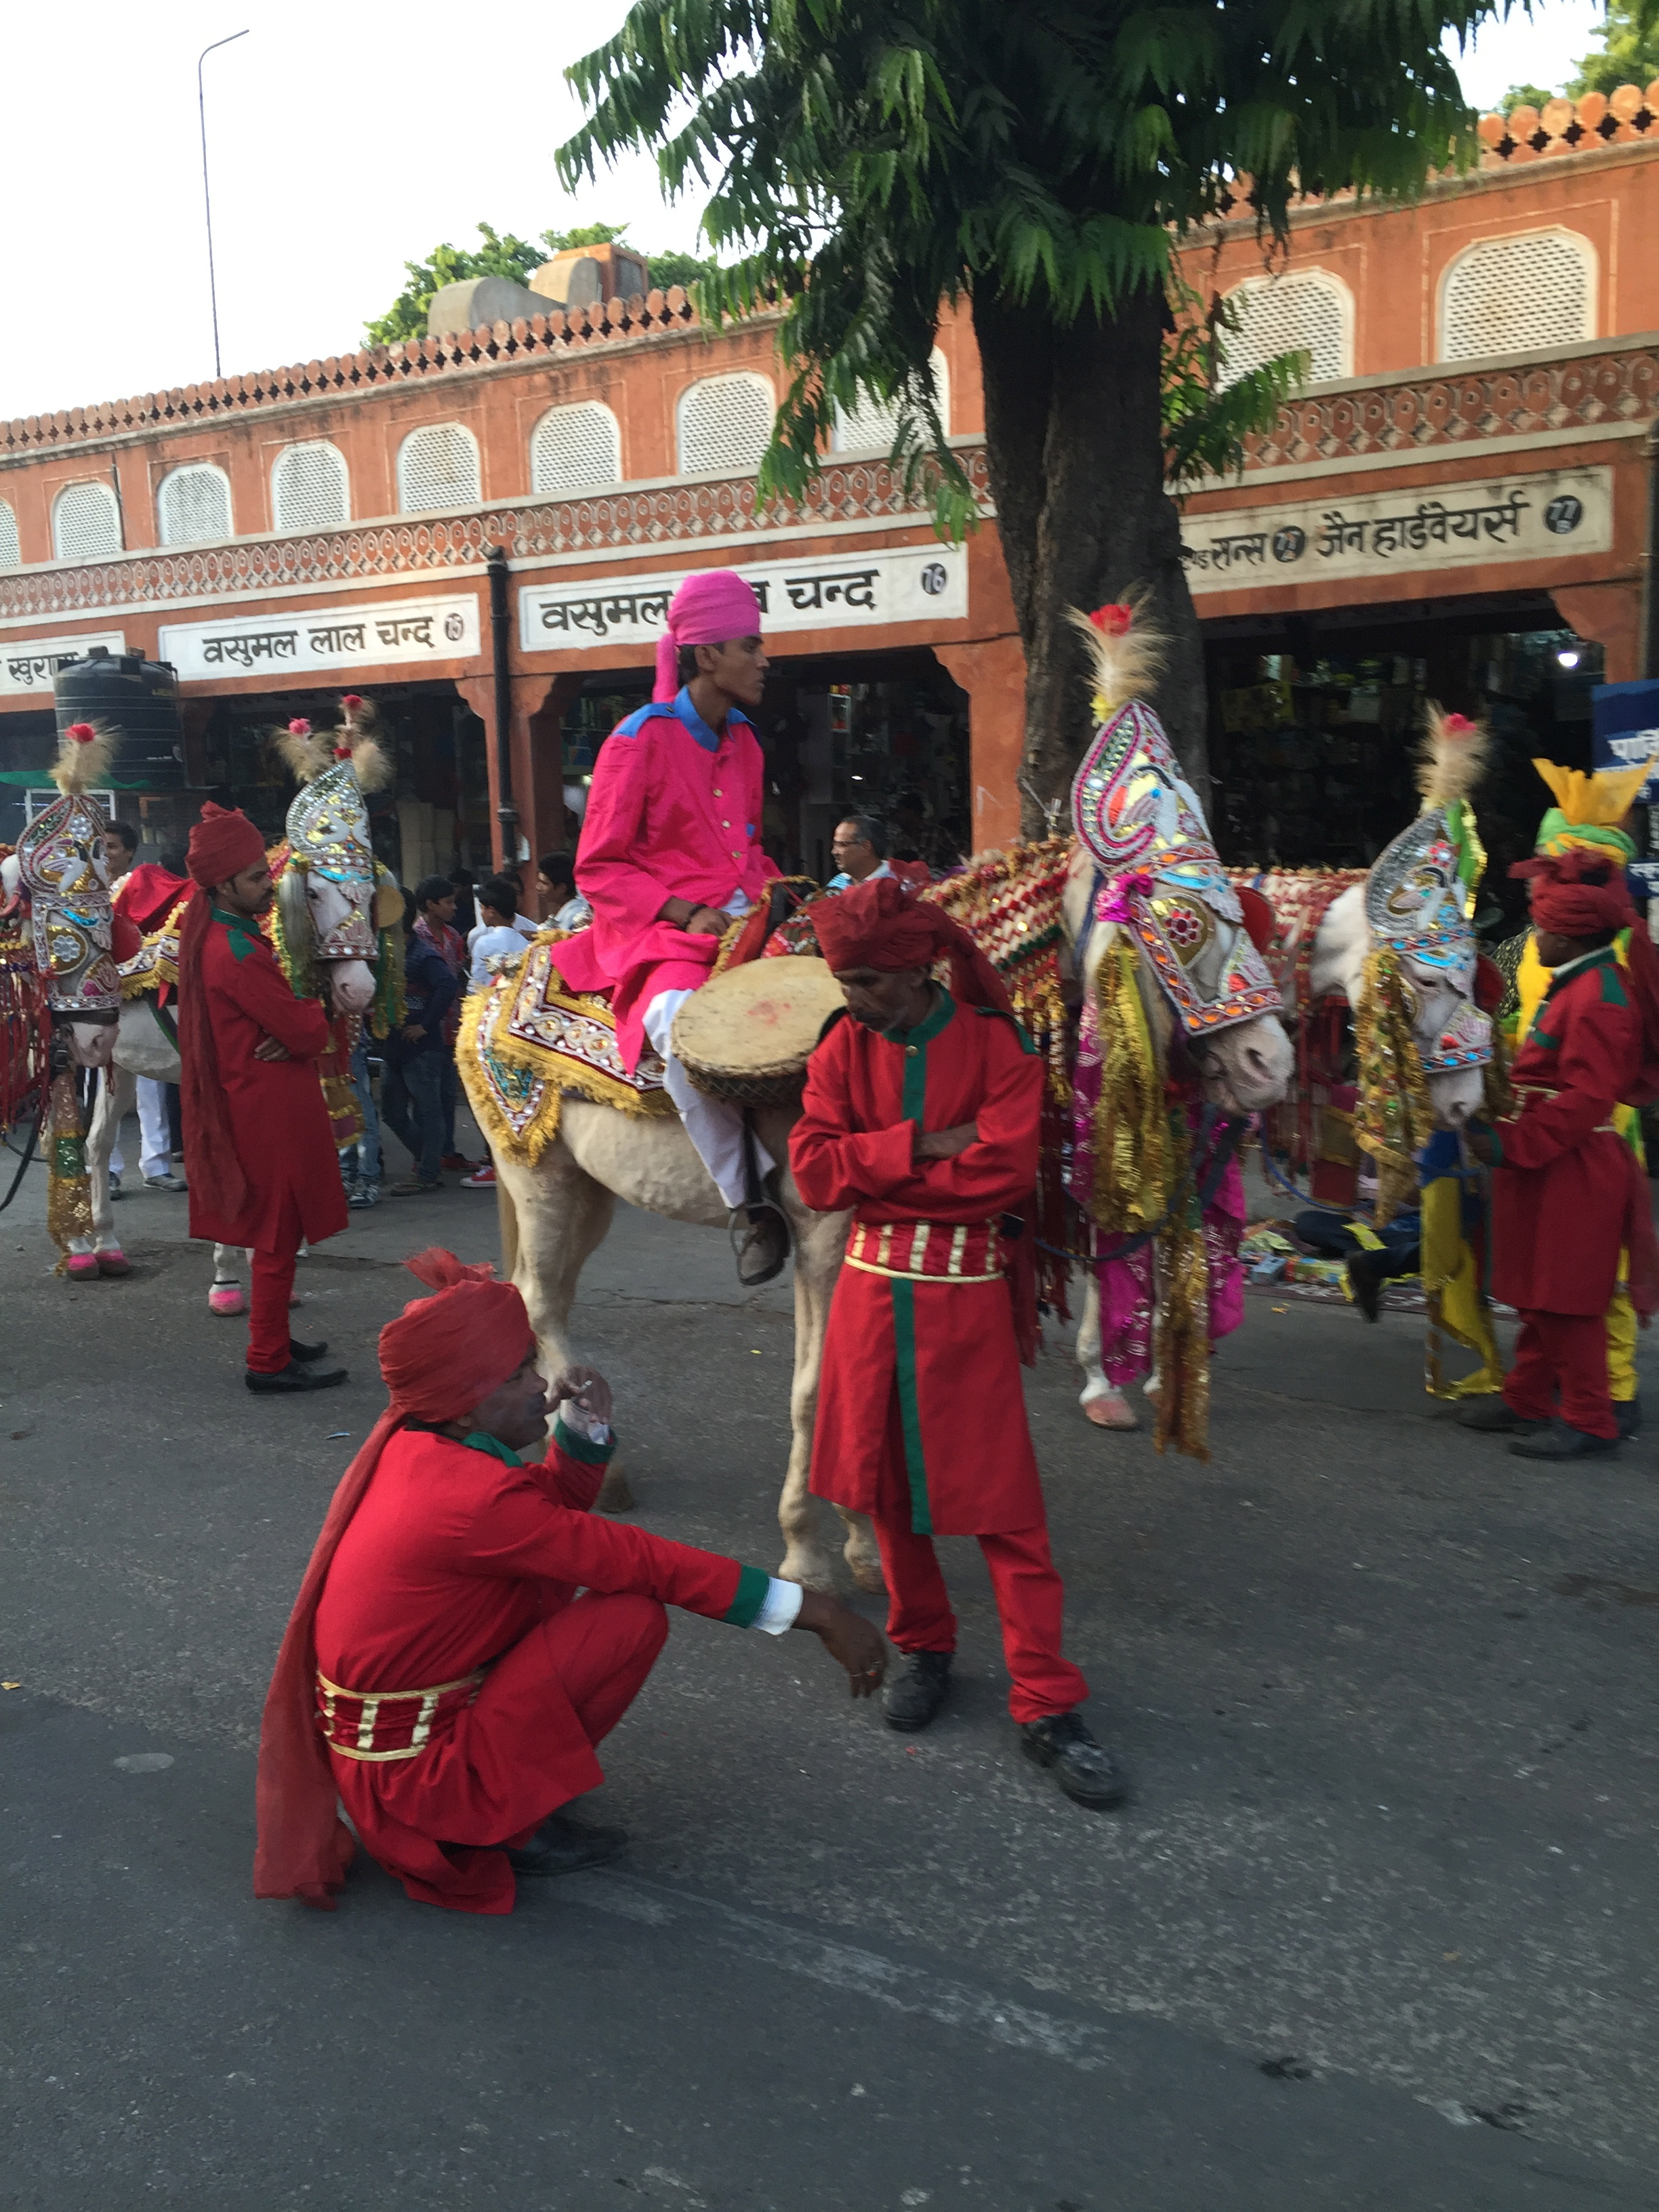 A parade I observed and then briefly joined in Jaipur.